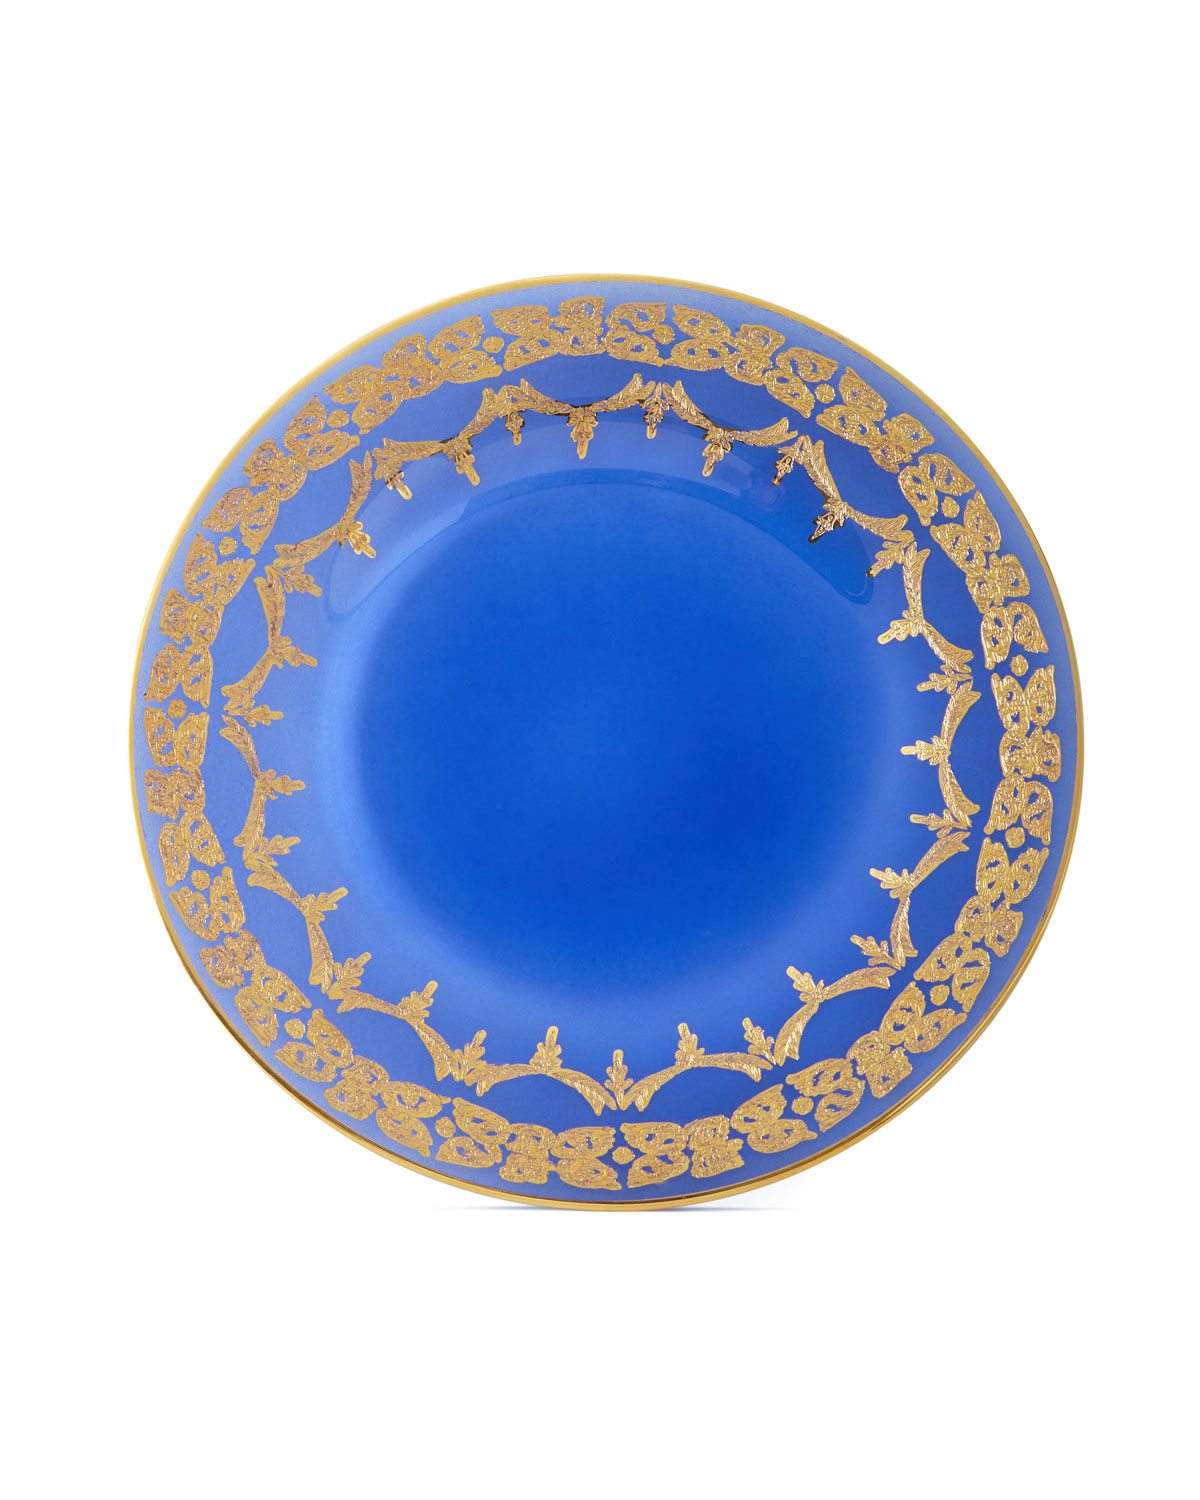 Neiman Marcus Blue Oro Bello Dinner Plates, Set of 4